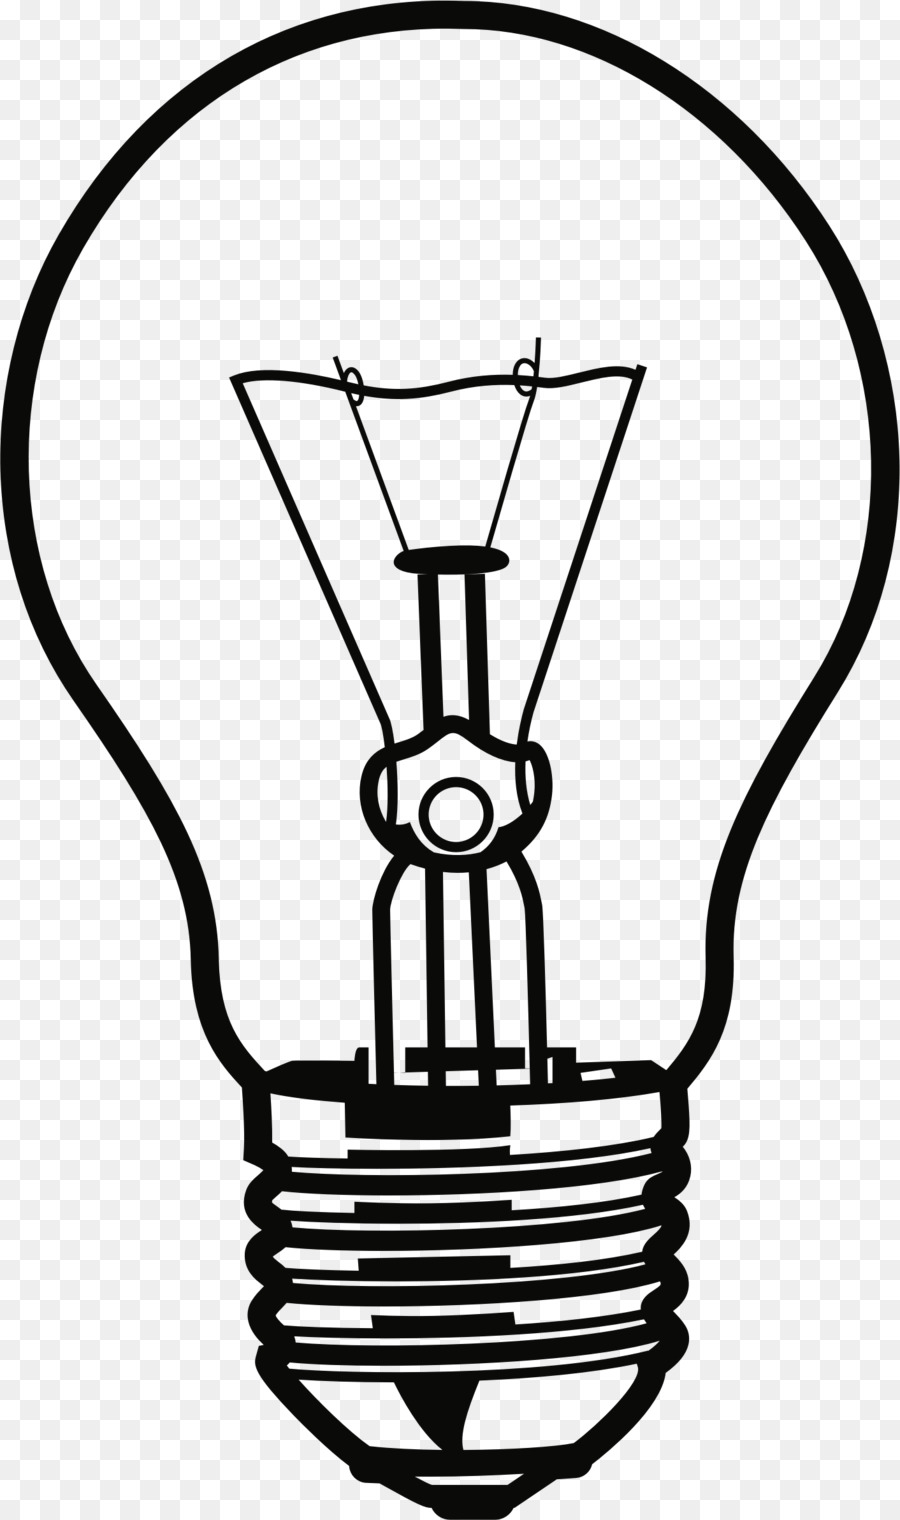 Incandescent Light Bulb Compact Fluorescent Lamp Clip Art